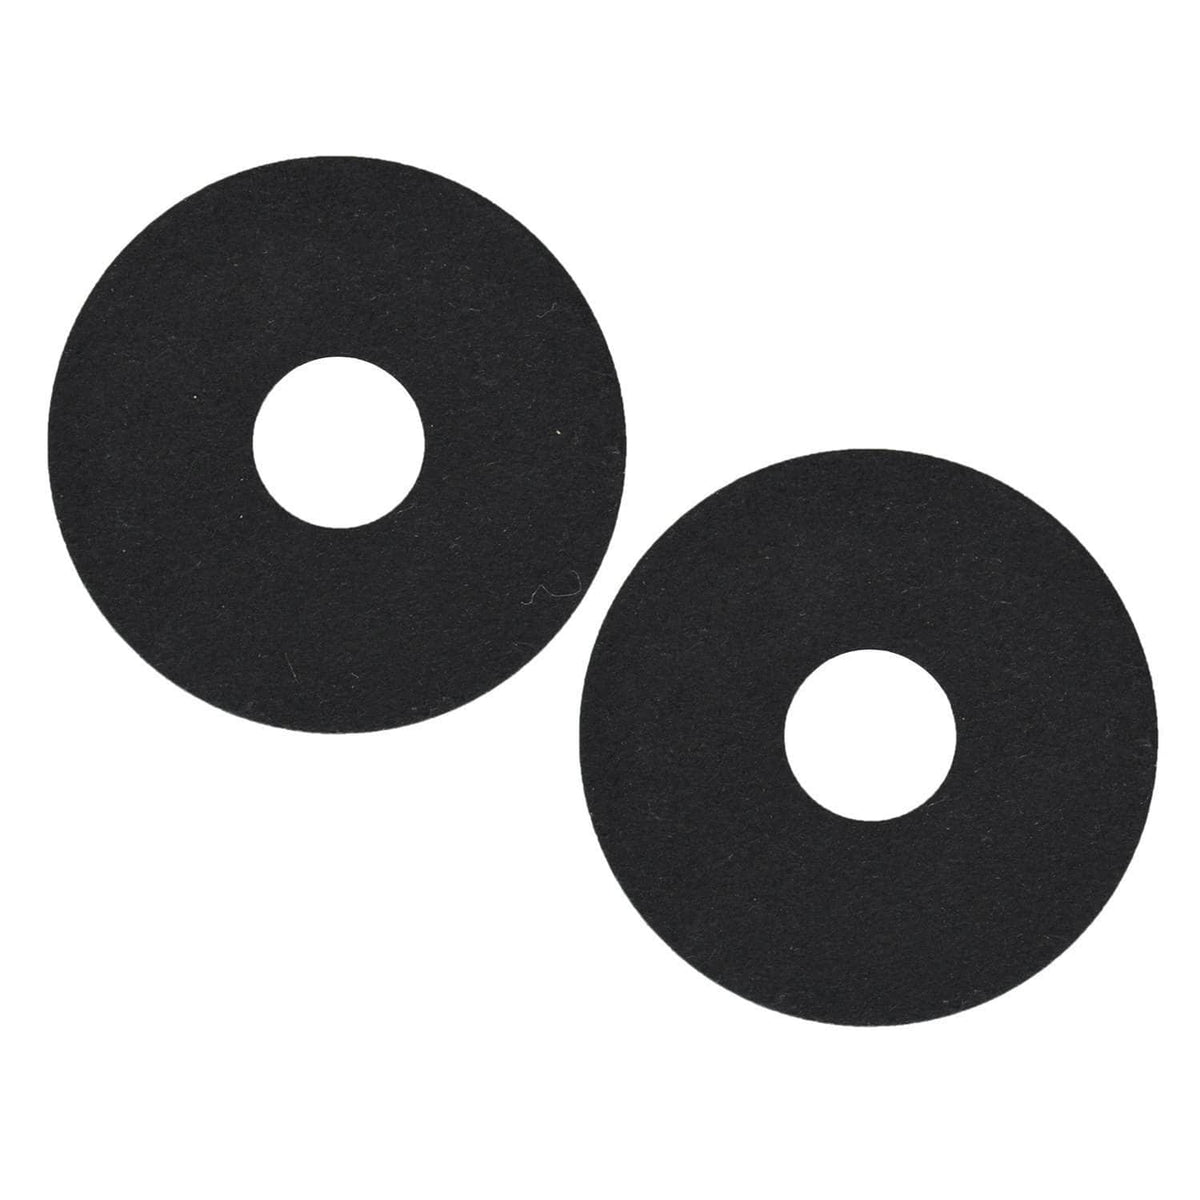 Fibre washers for use with Aga range cooker towel rail brackets (pair)